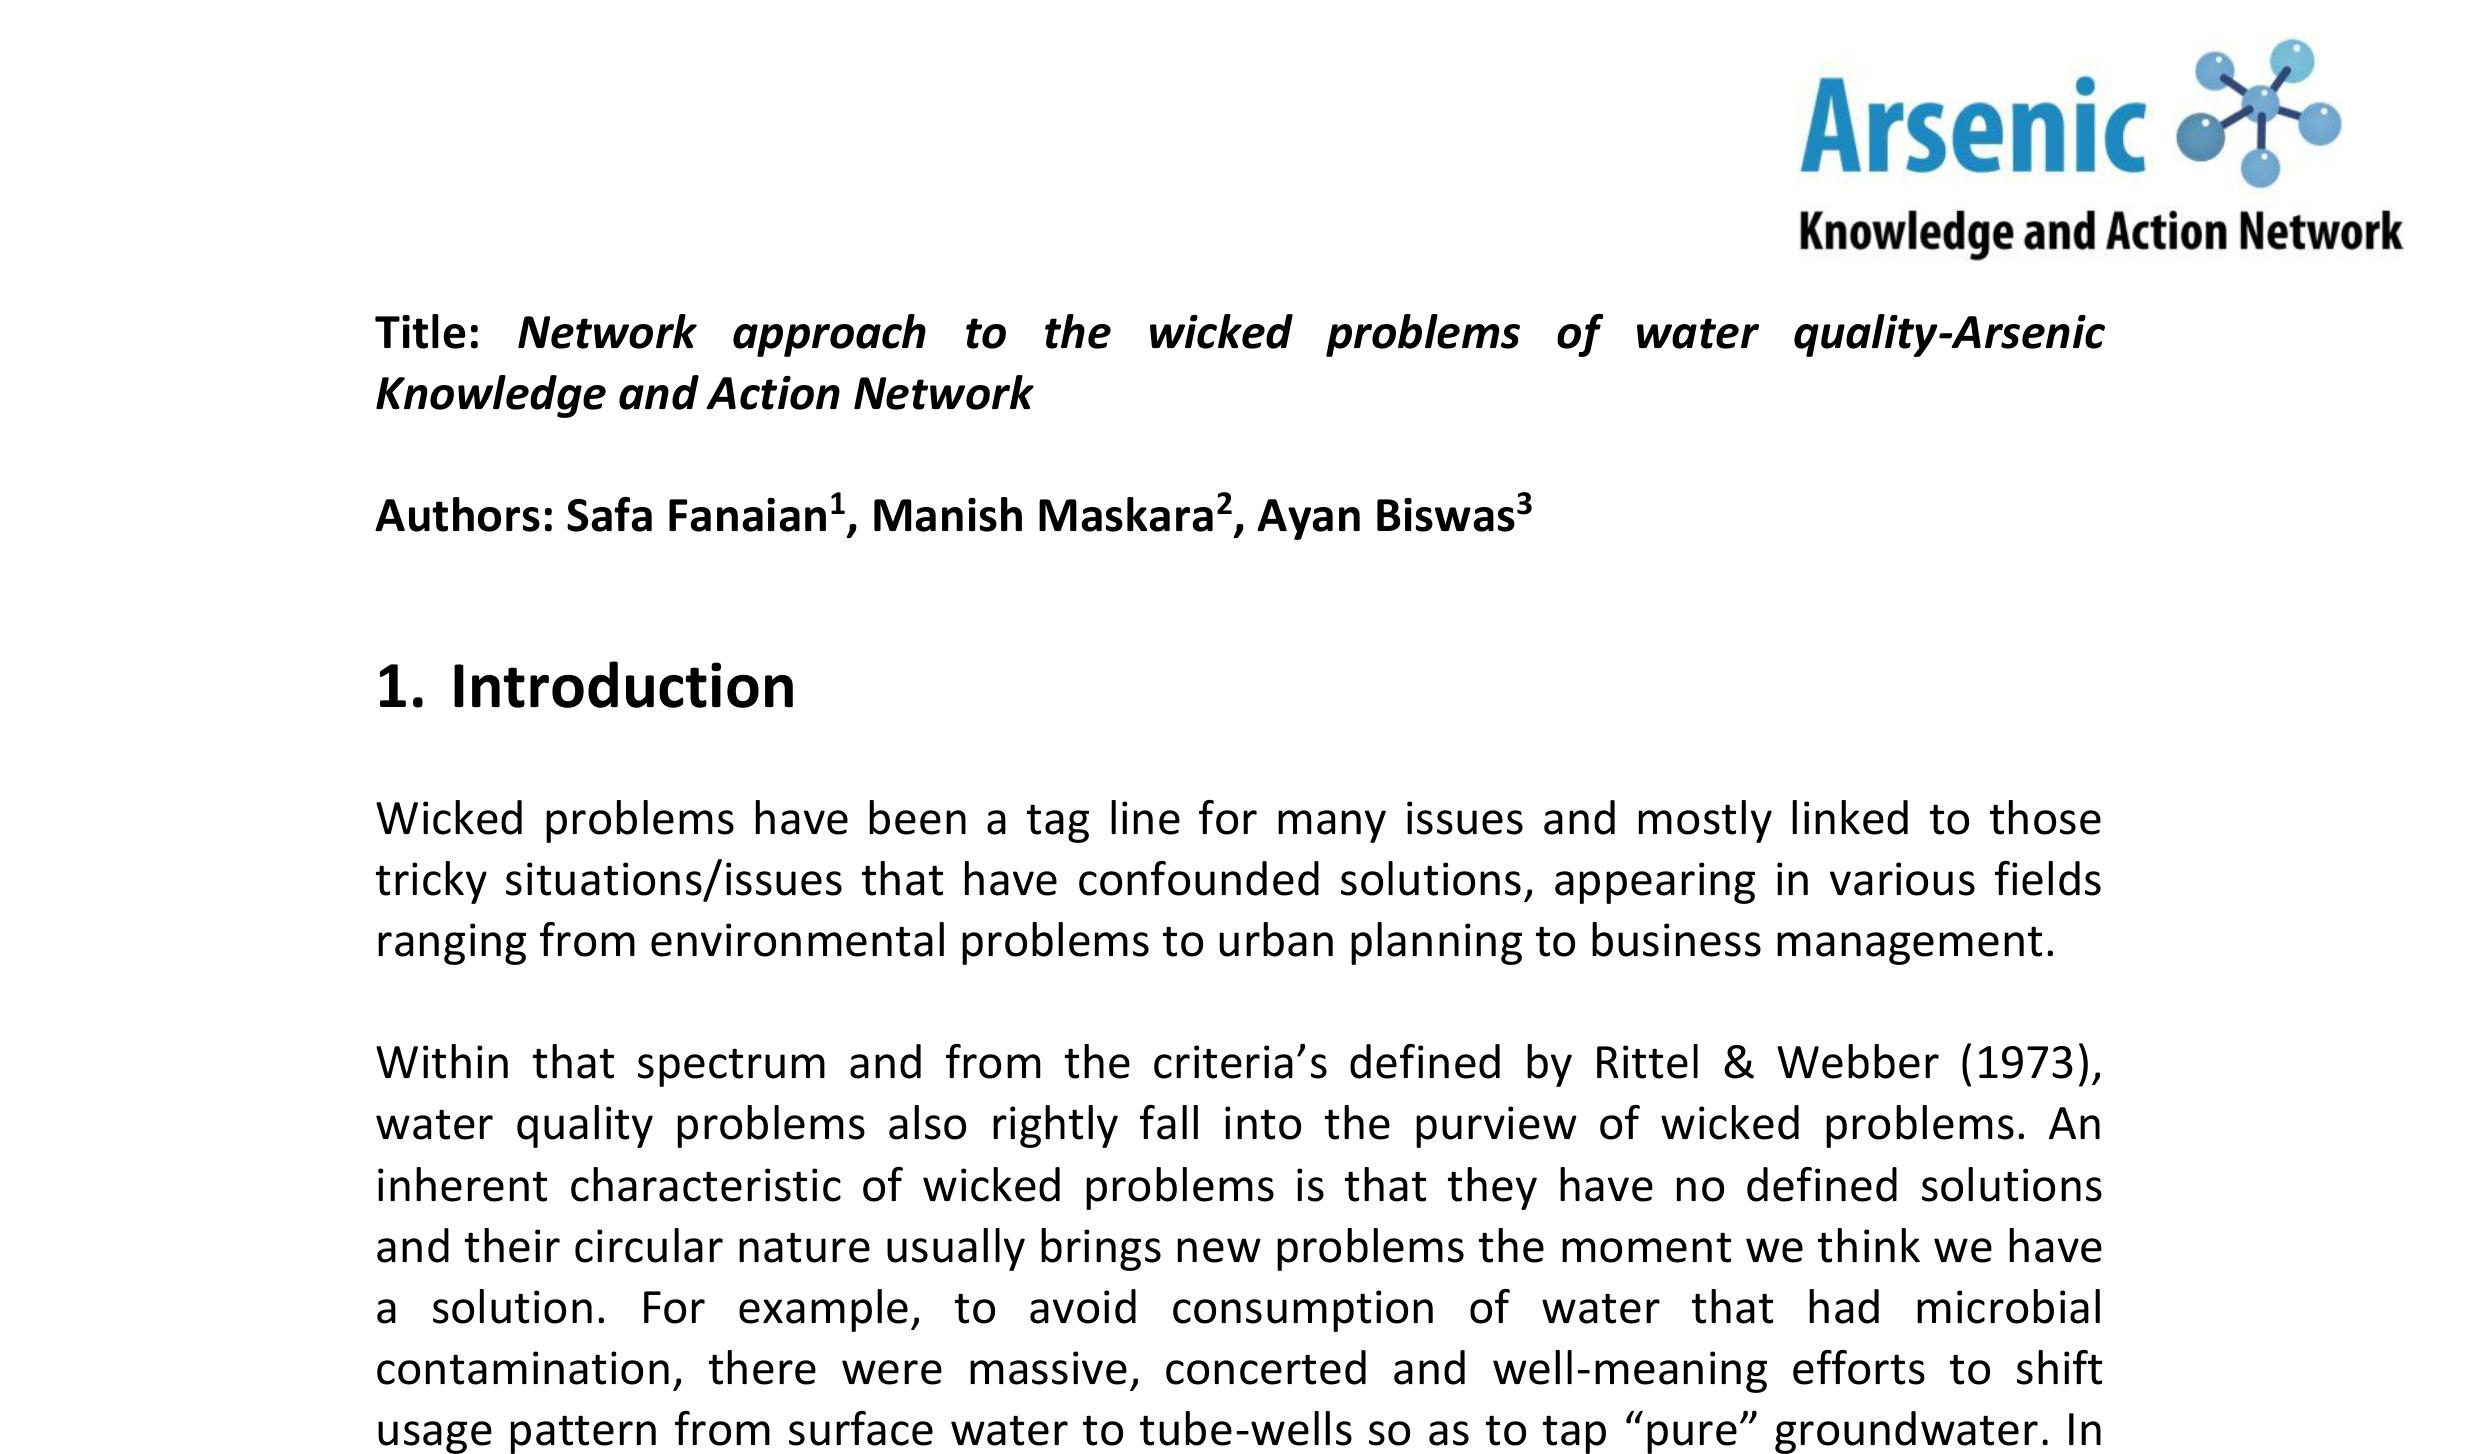 Network approach to the wicked problems of water quality-Arsenic Knowledge and Action Network